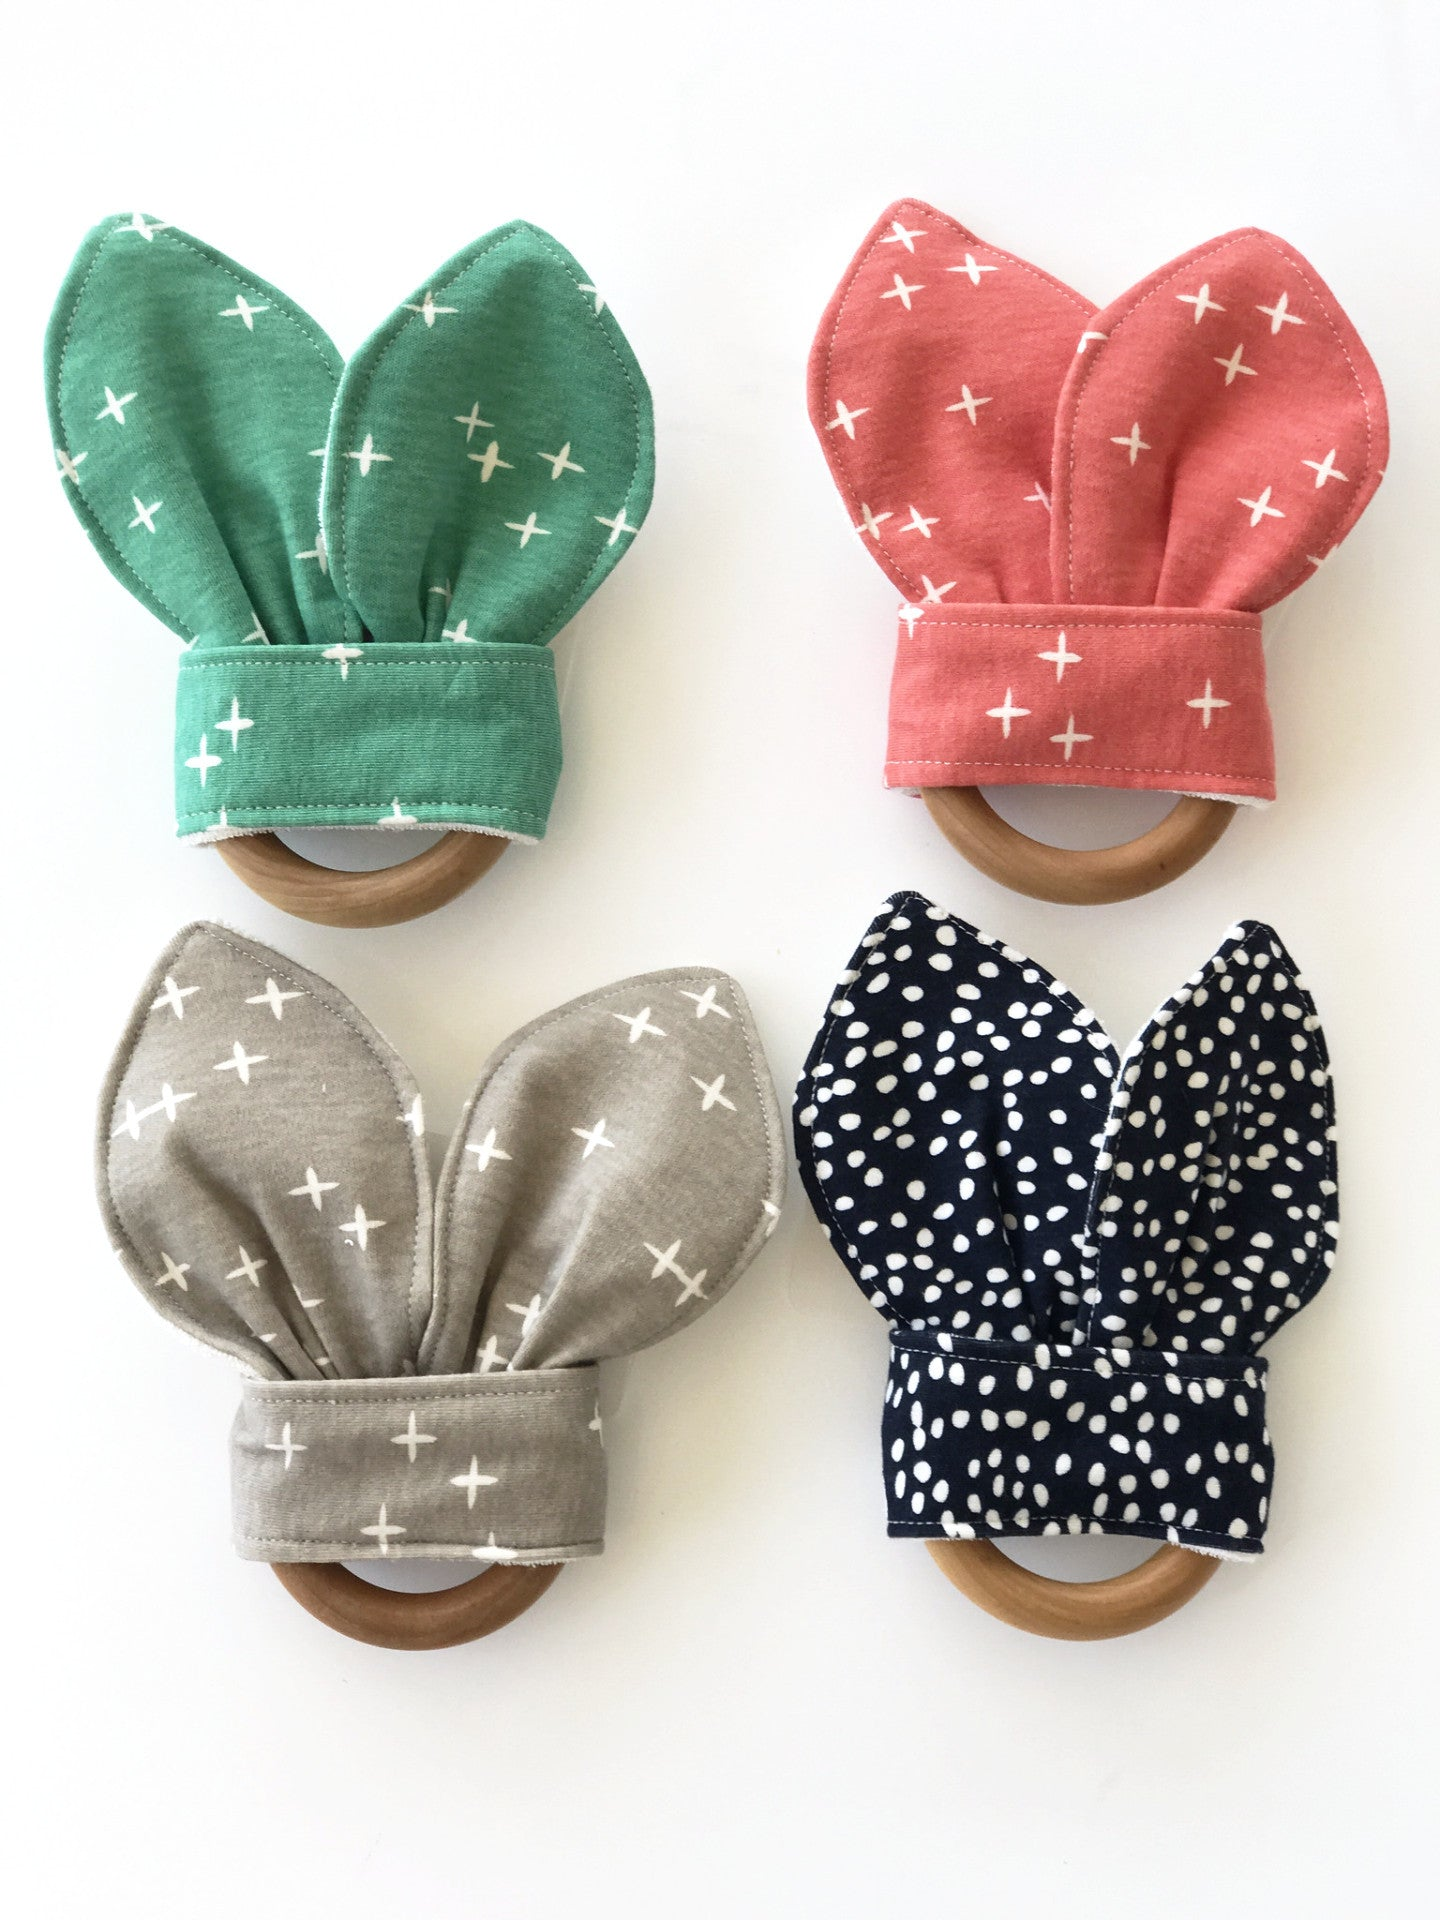 Organic cotton wooden teethers